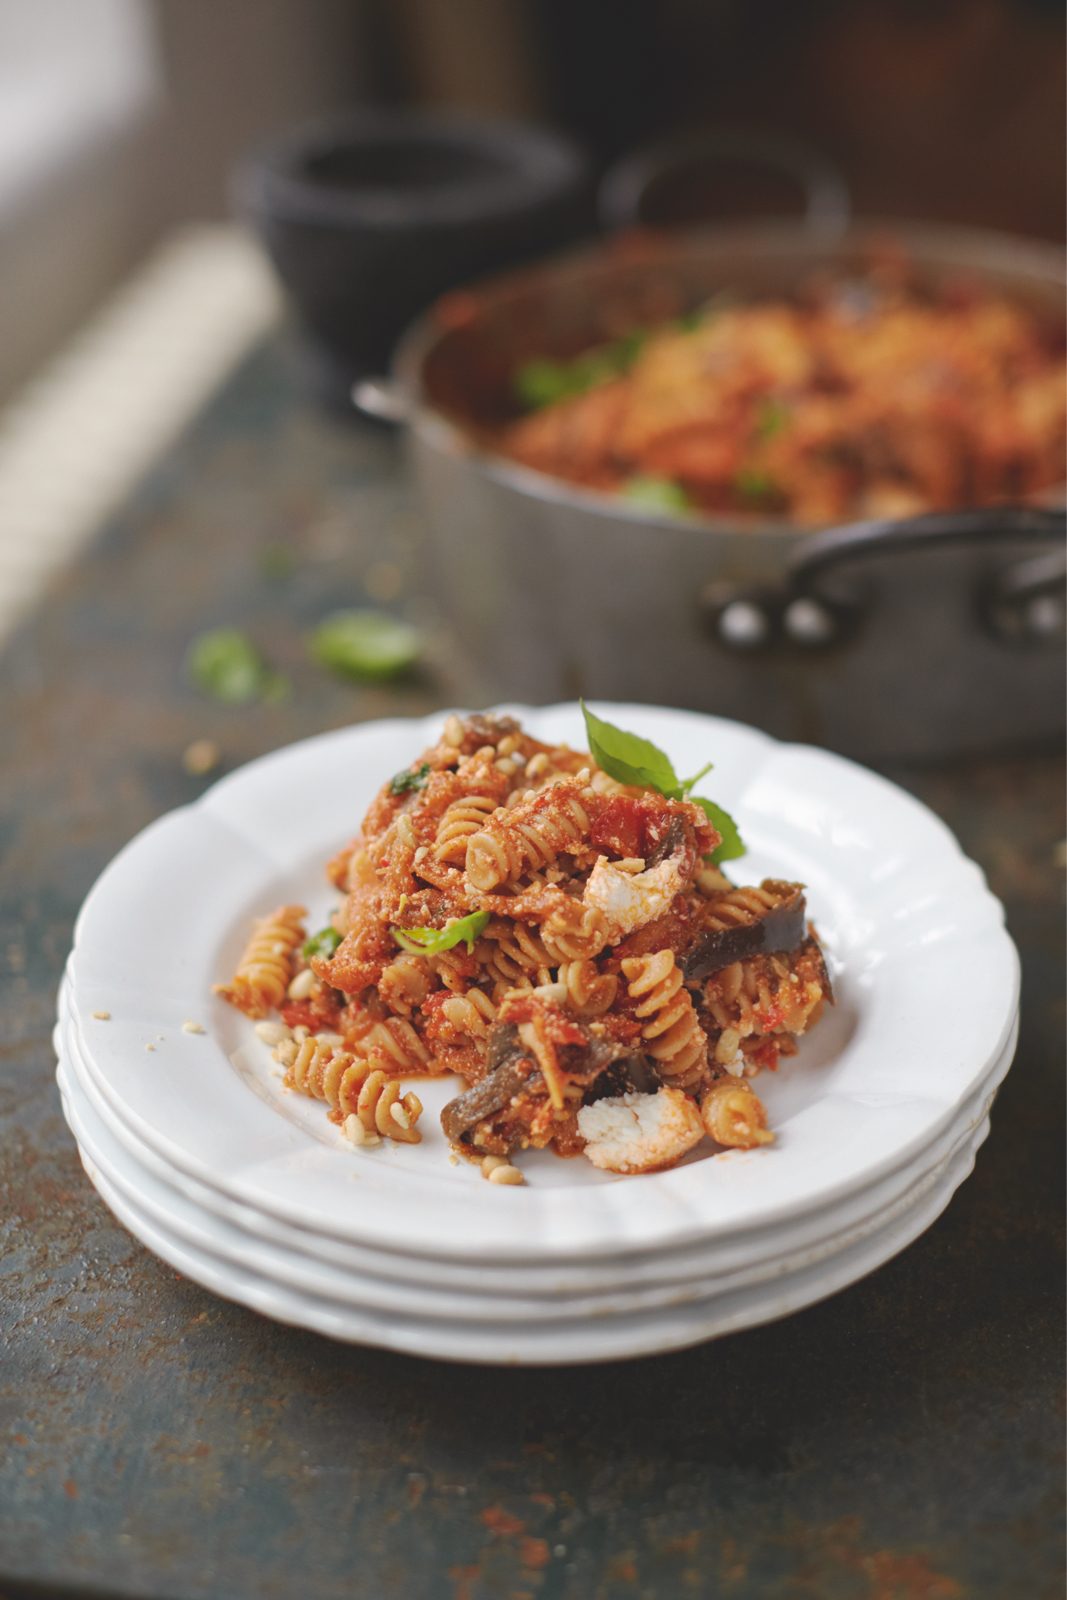 jamie oliver 39 s happiness pasta and everyday super food cookbook review tinned tomatoes. Black Bedroom Furniture Sets. Home Design Ideas